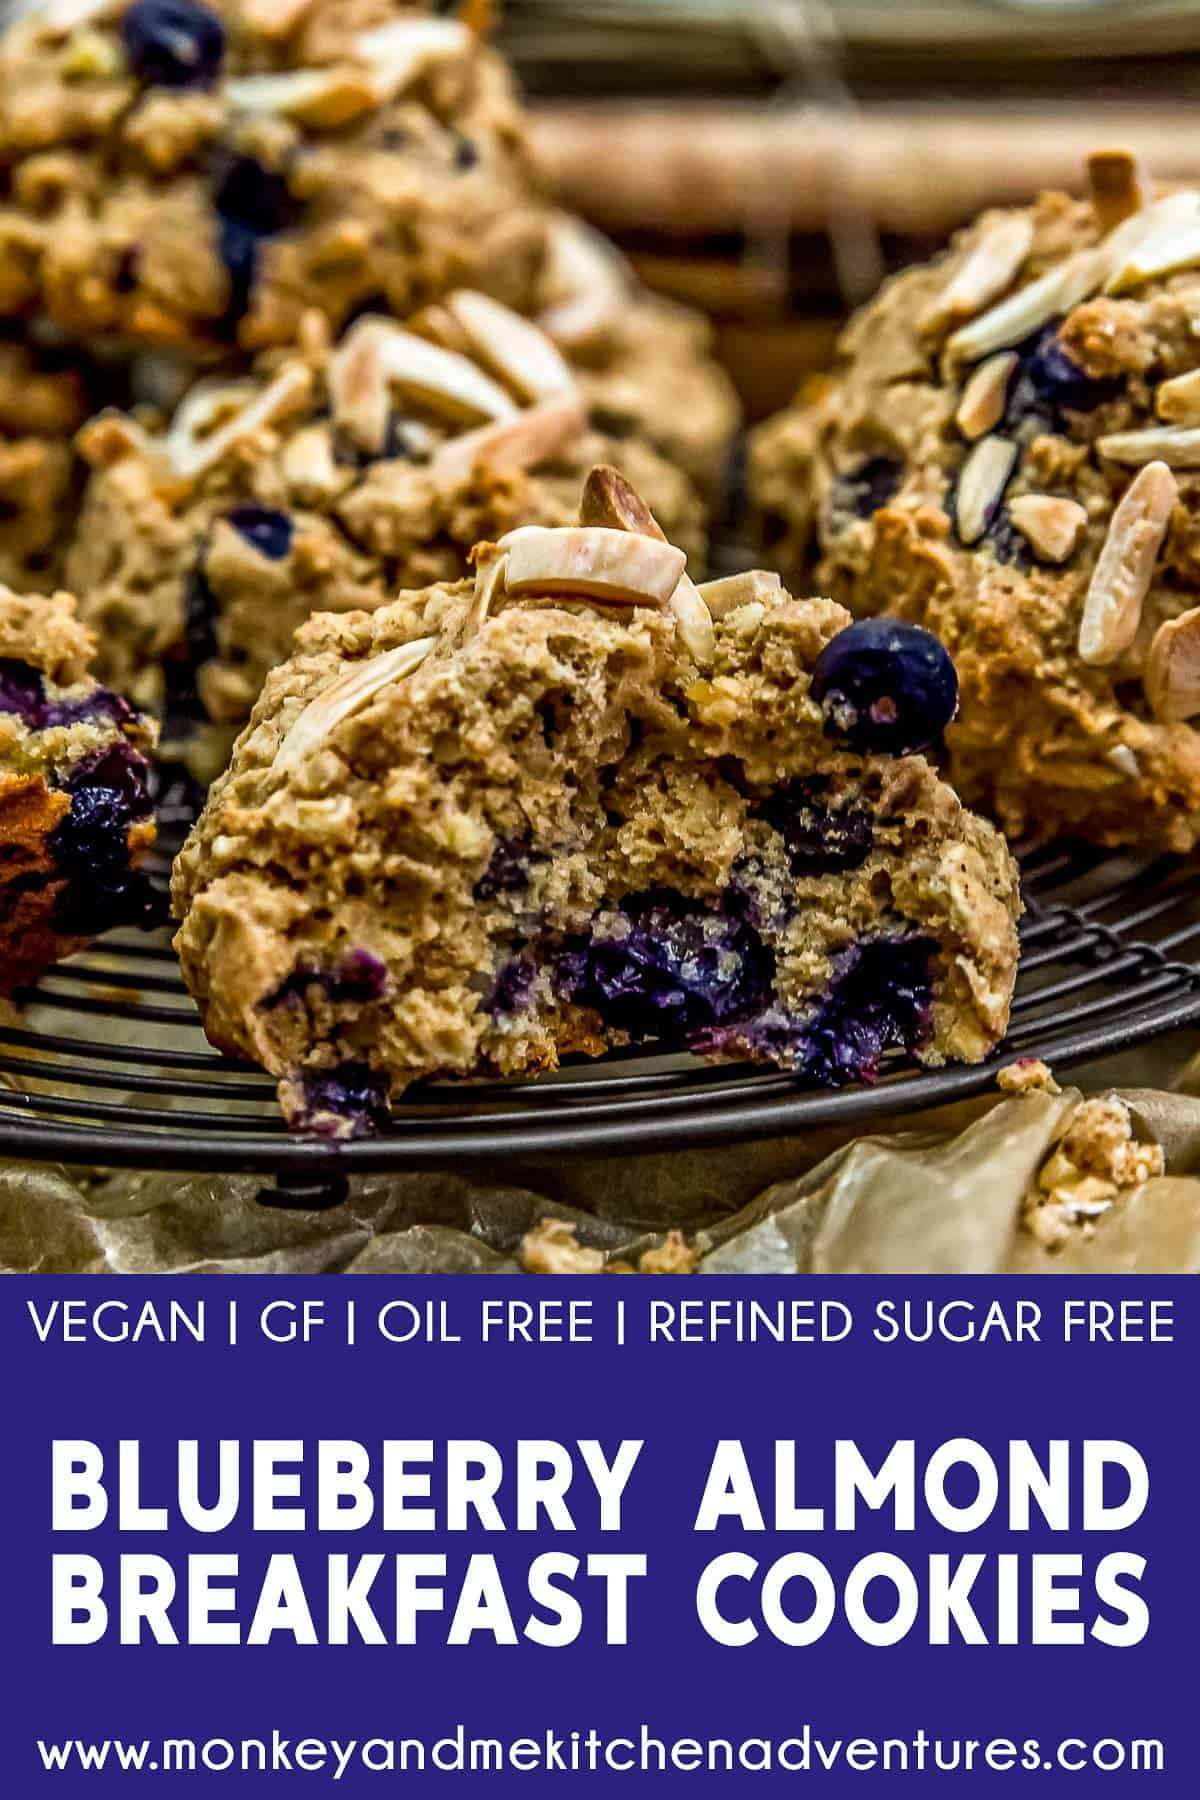 Blueberry Almond Breakfast Cookies with text description